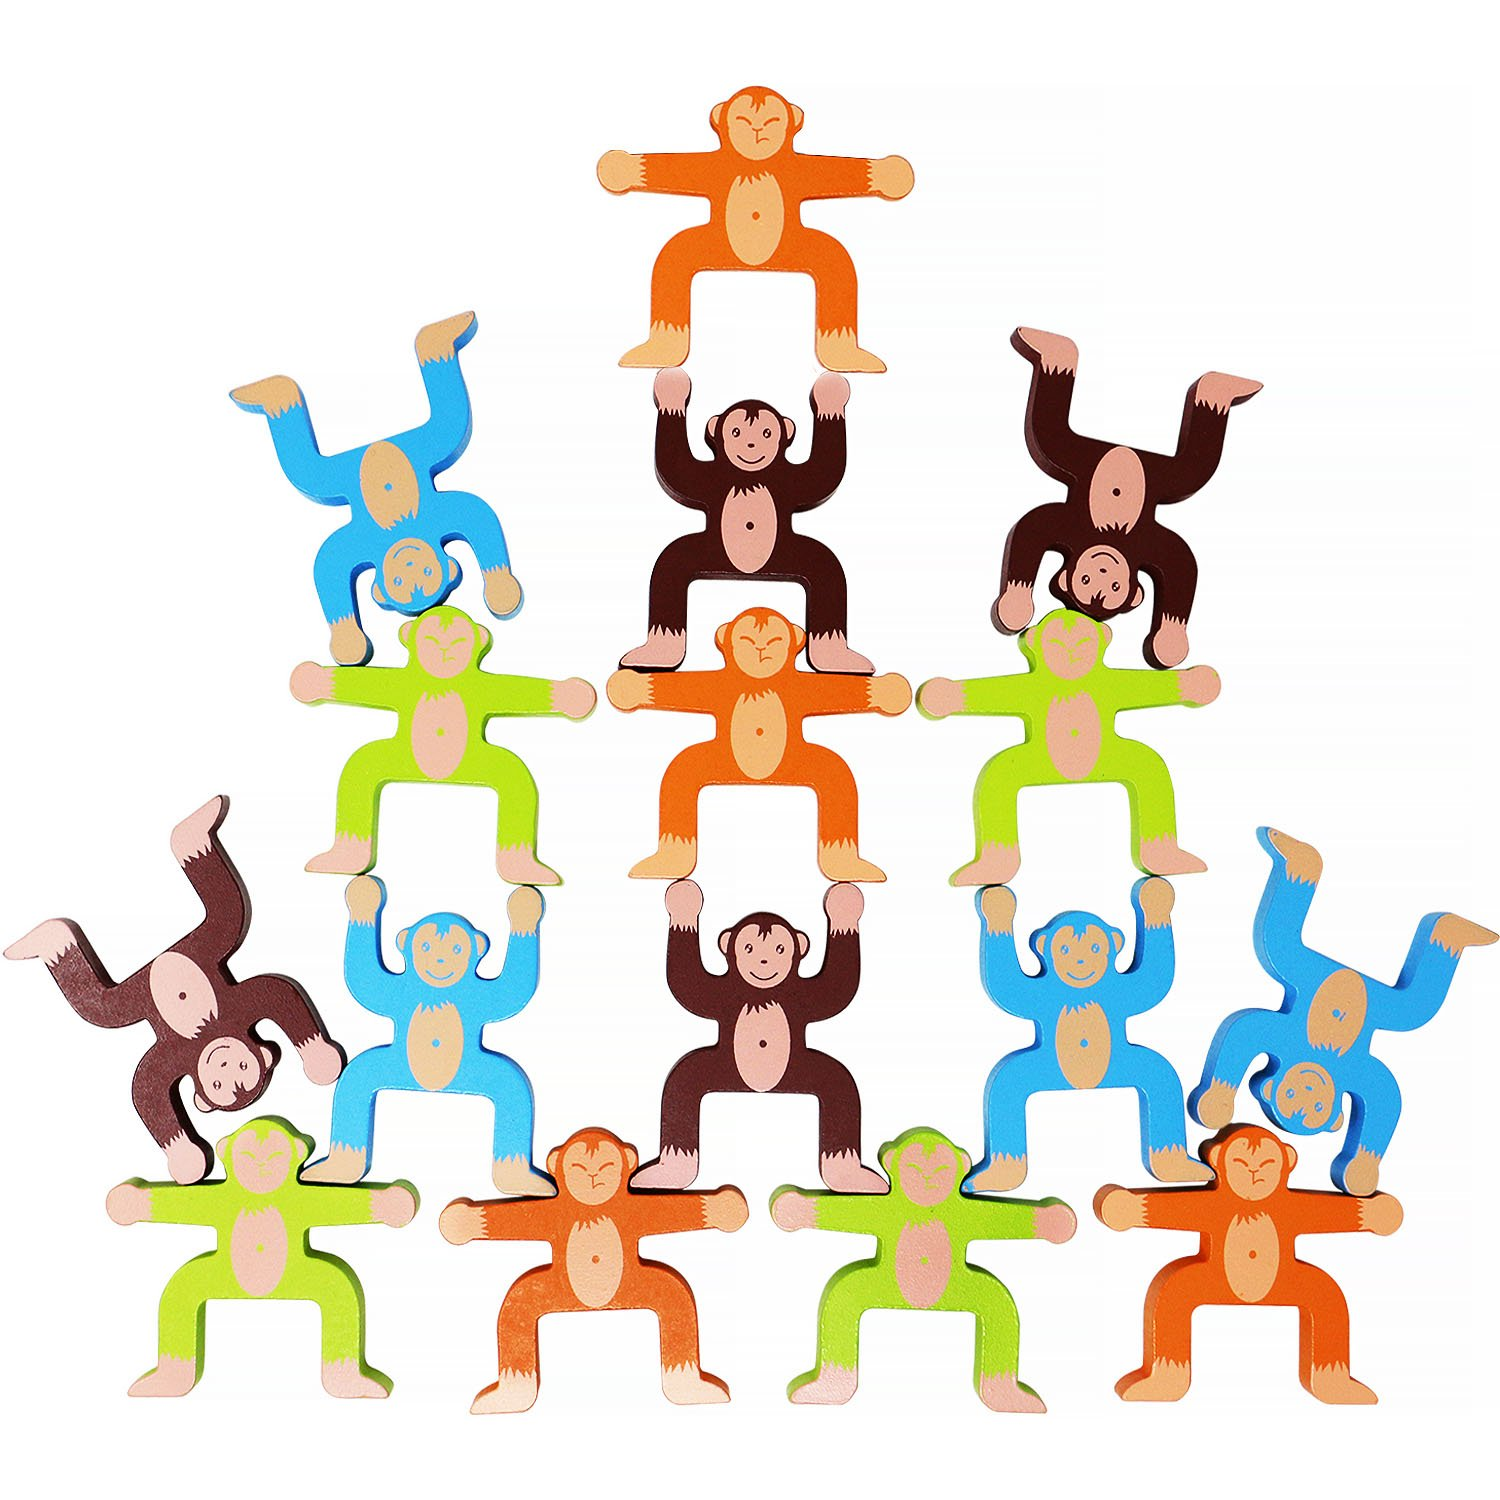 Toyssa Wooden Stacking Games Monkeys Interlock Toys Balancing Blocks Games Toddler Educational Toys for 3 4 5 6 Years Old Kids Infants Adults 16 Pieces by Toyssa